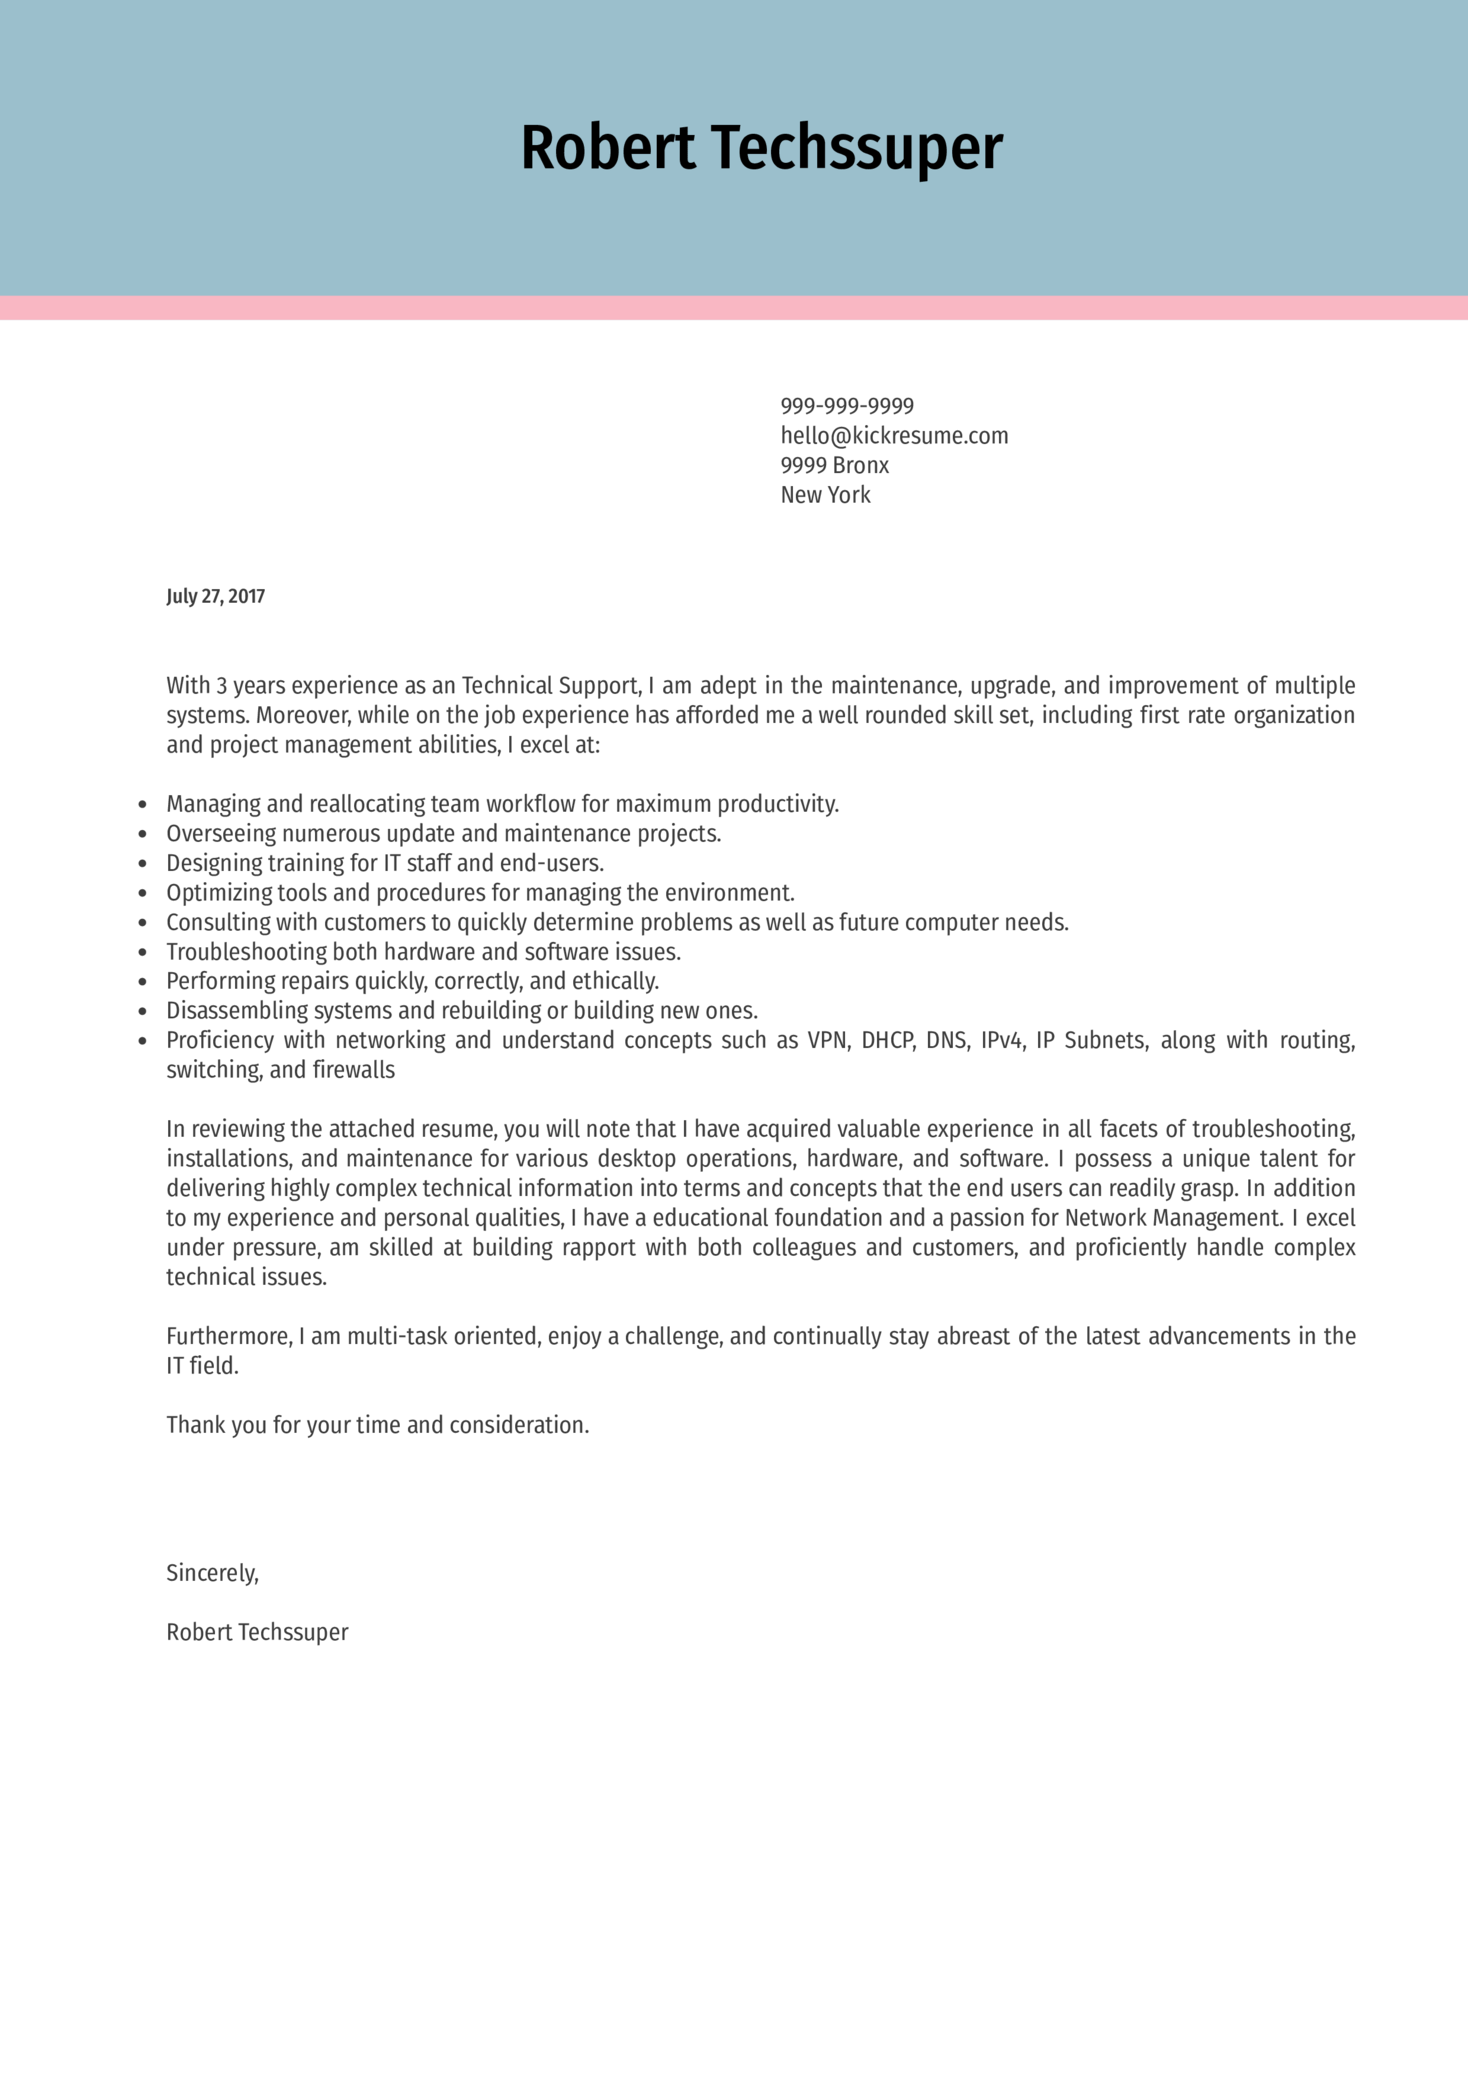 Cover Letter Examples by Real People: Technical support ...